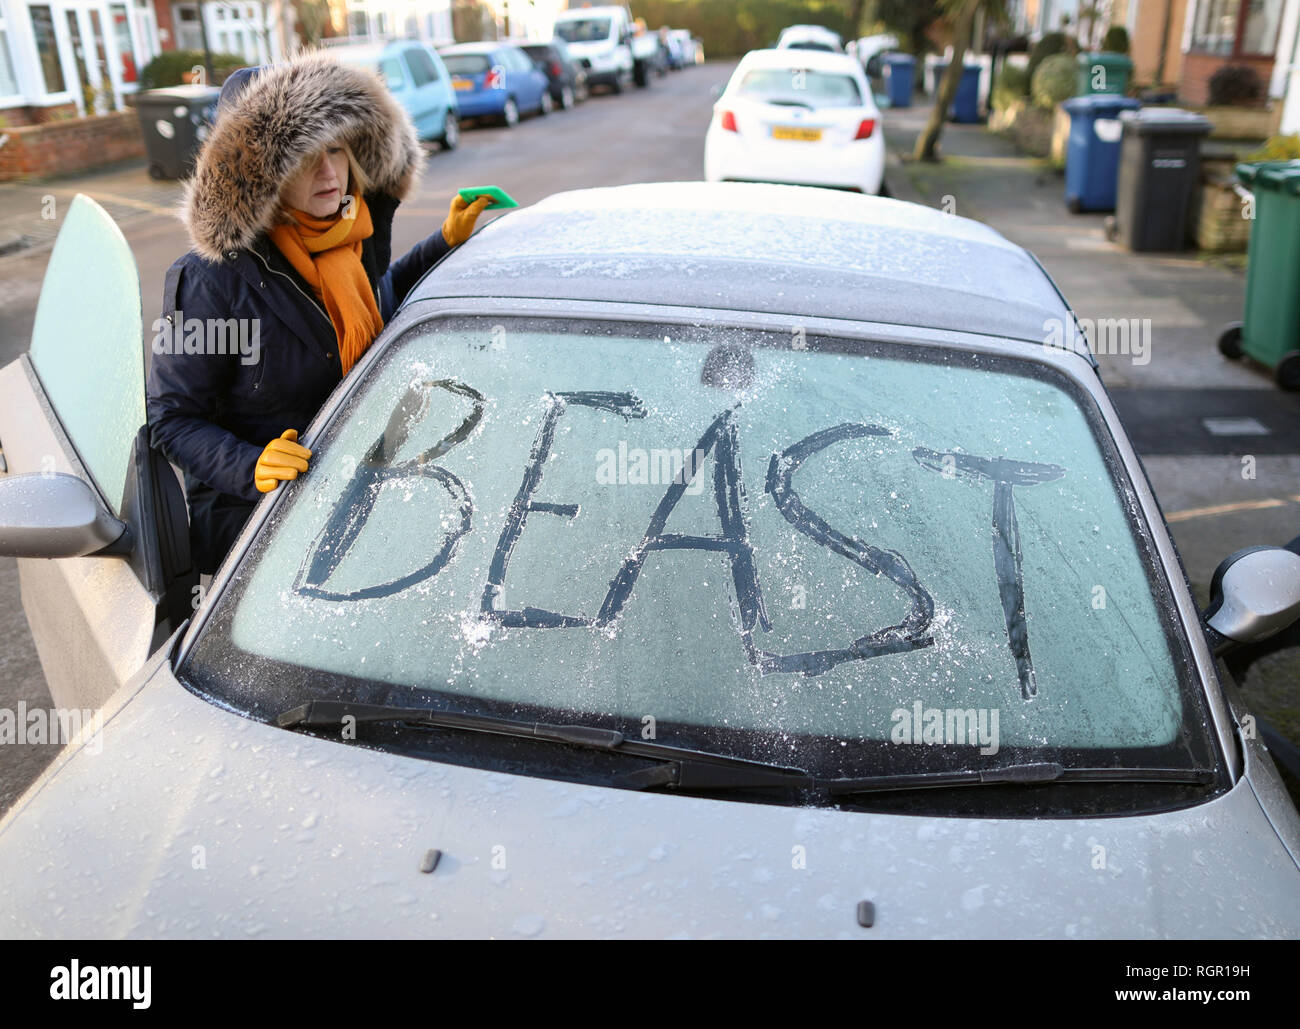 Pic shows: Beast from the East returns to hit commuters in London today  Windscreens were iced up, and the roads slippery as early morning car commute - Stock Image